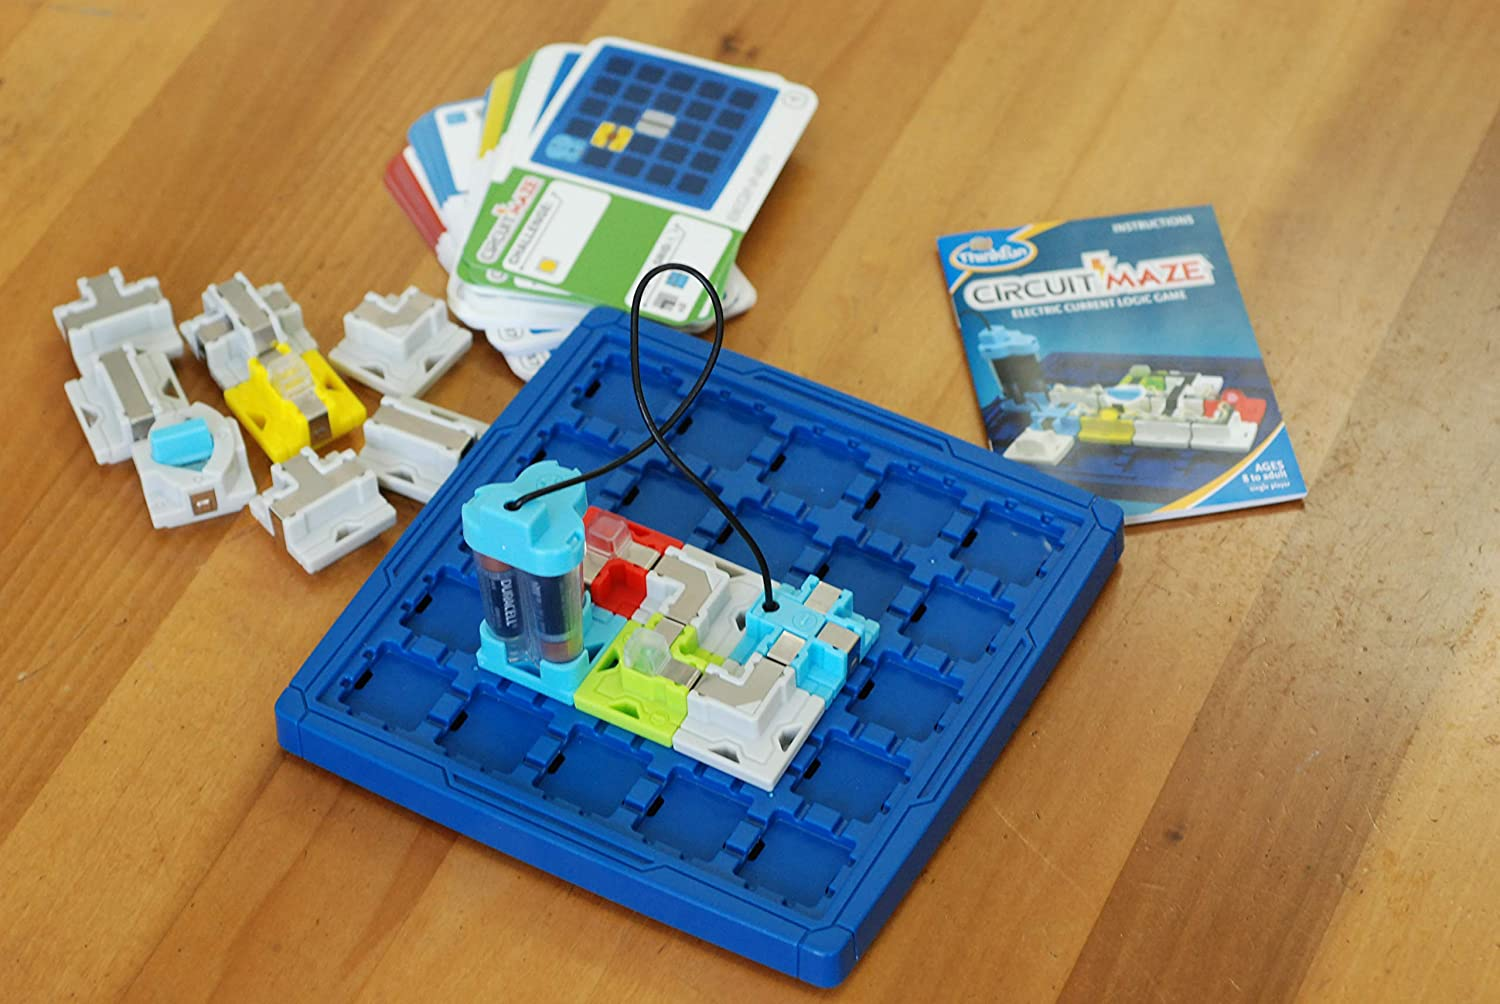 ThinkFun Circuit Maze Electric Current Logic Game and STEM Toy for Boys and  Girls Age 8 and Up - Toy of the Year Finalist, Teaches Players about